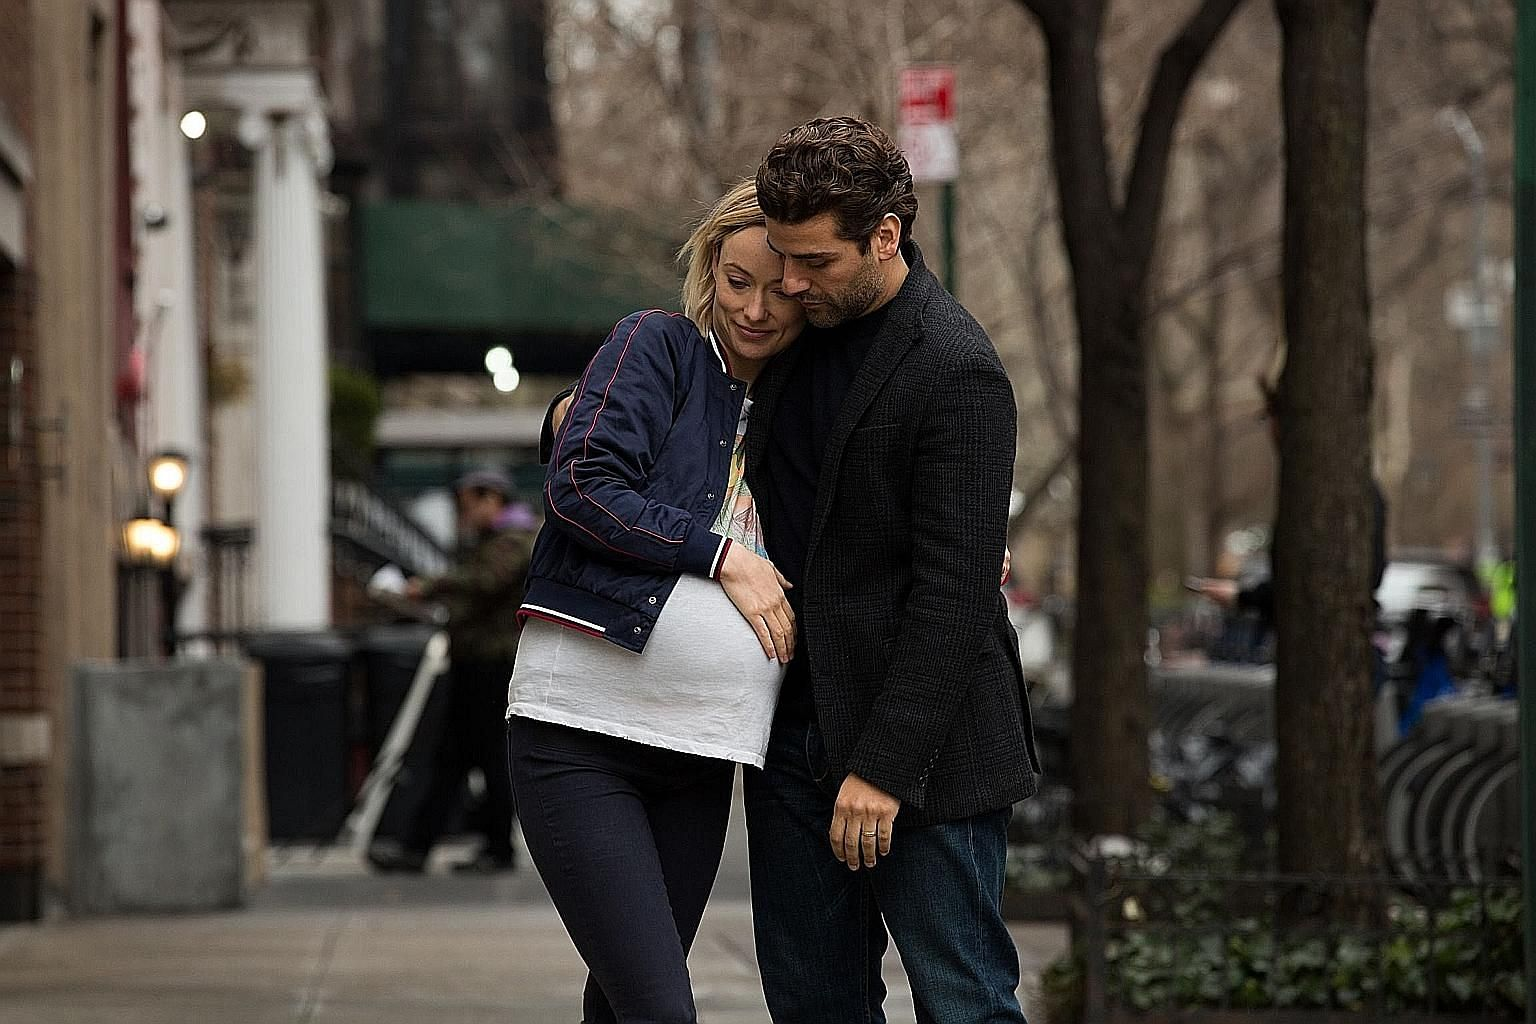 Film-maker Dan Fogelman (above, with his wife Caitlin Thompson) is the director of Life Itself, which stars Olivia Wilde and Oscar Isaac (top).